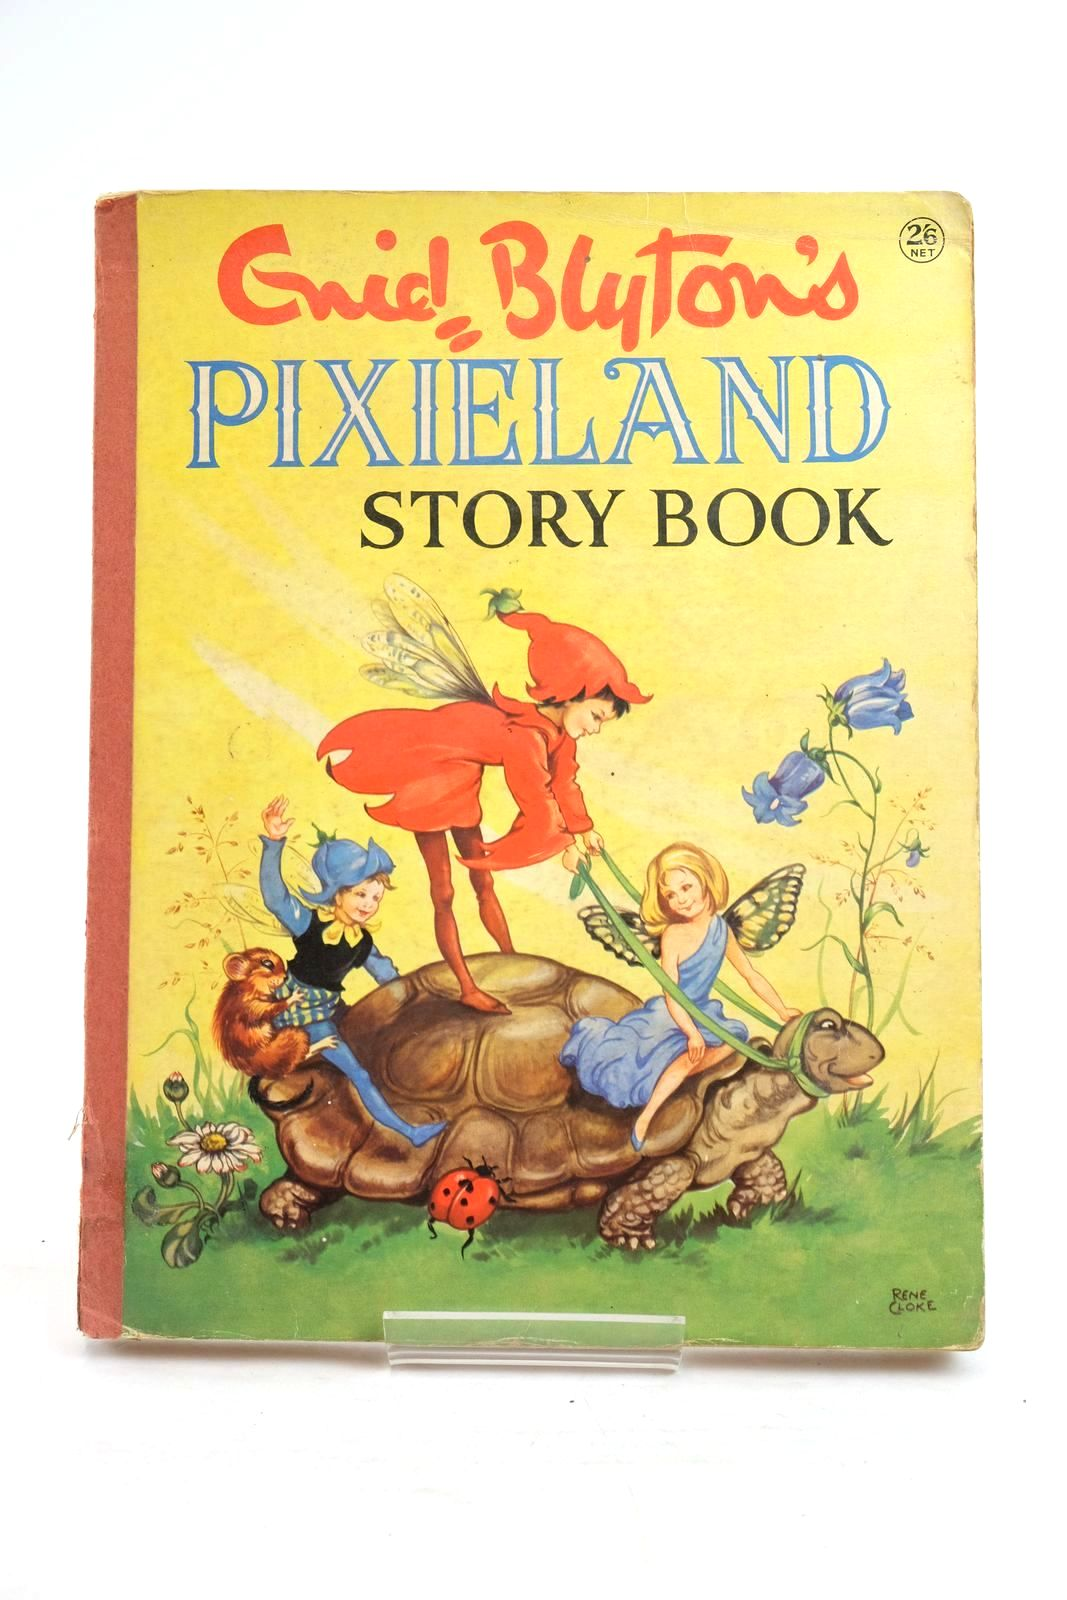 Photo of ENID BLYTON'S PIXIELAND STORY BOOK written by Blyton, Enid illustrated by Cloke, Rene published by Collins (STOCK CODE: 1320050)  for sale by Stella & Rose's Books